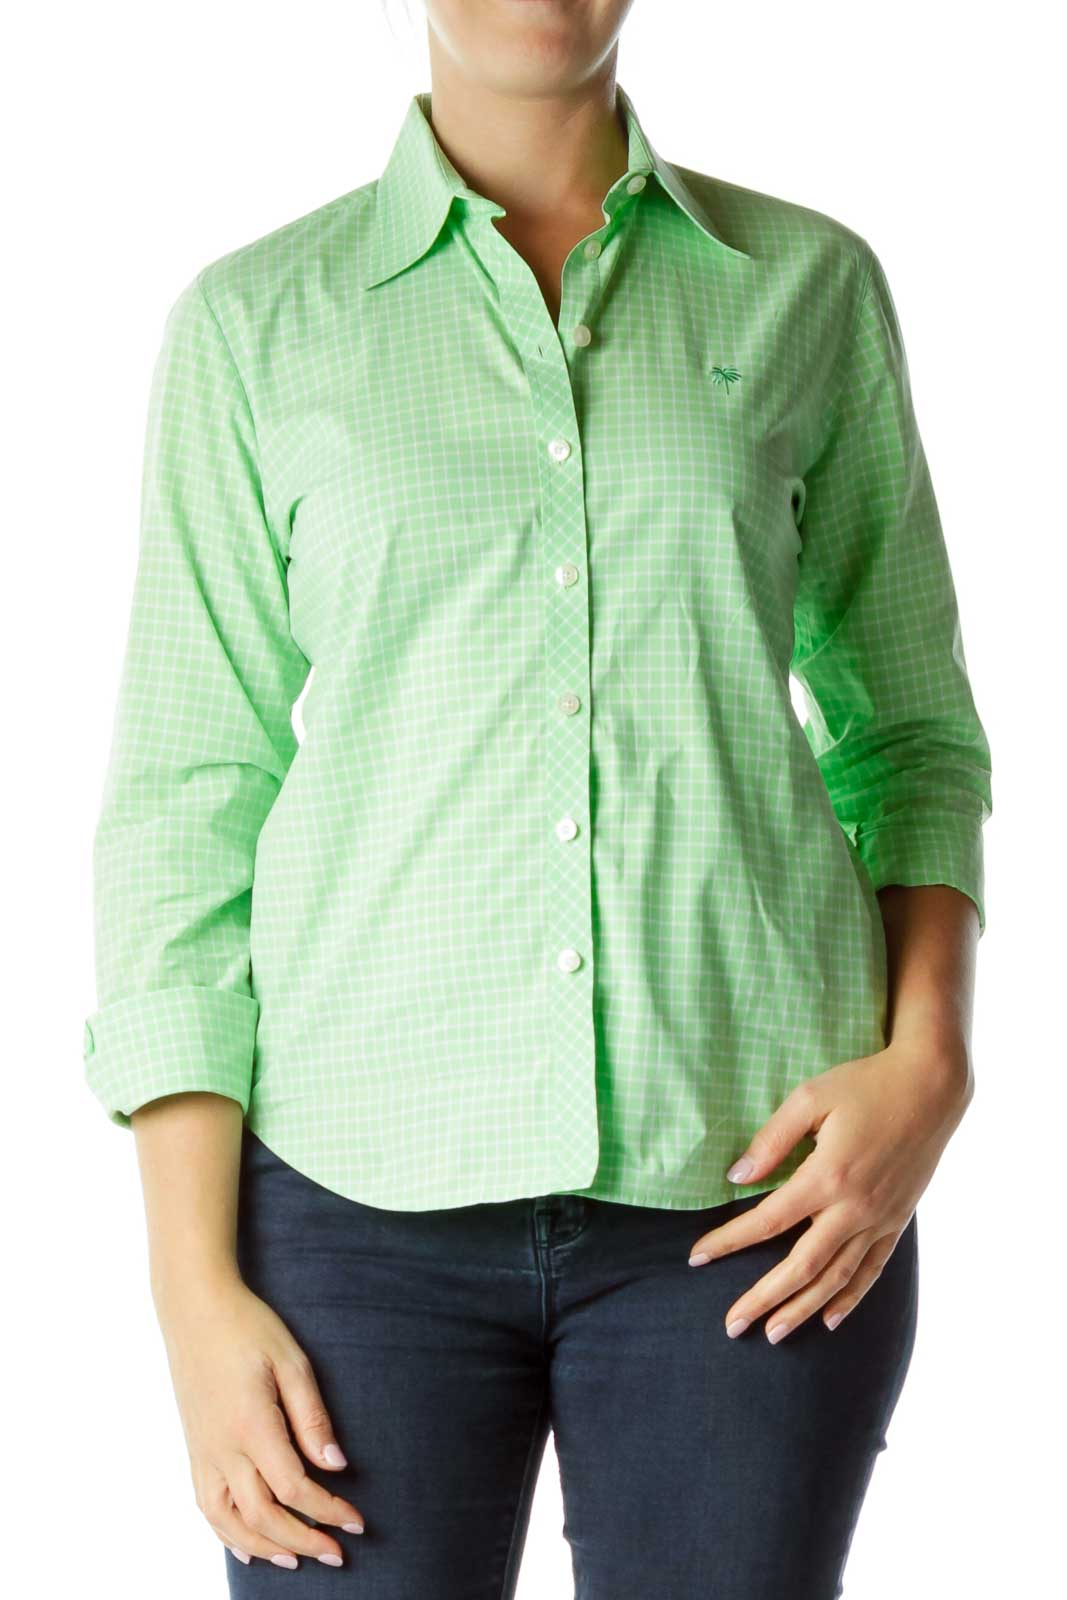 Green White Plaid Shirt